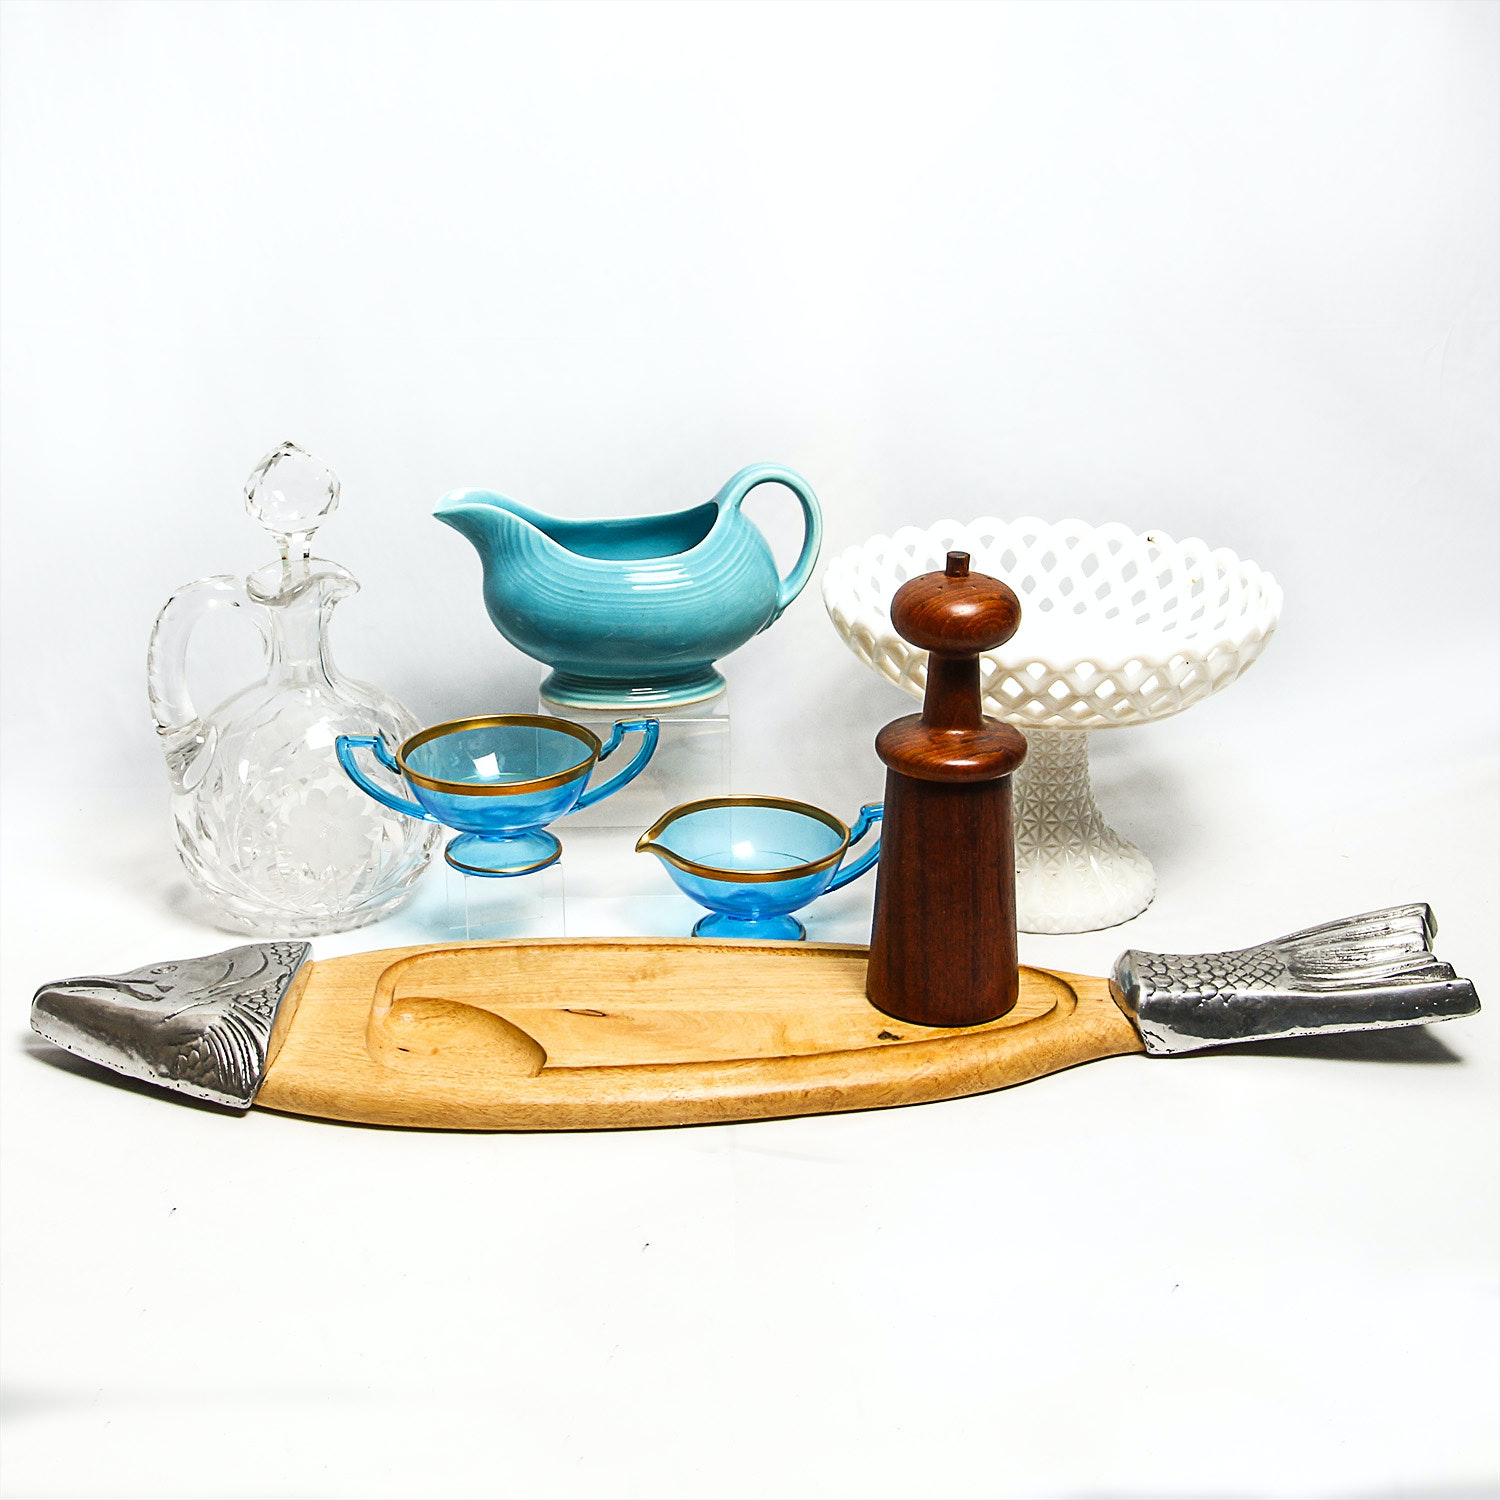 Collection of Vintage Housewares Featuring Fiestaware